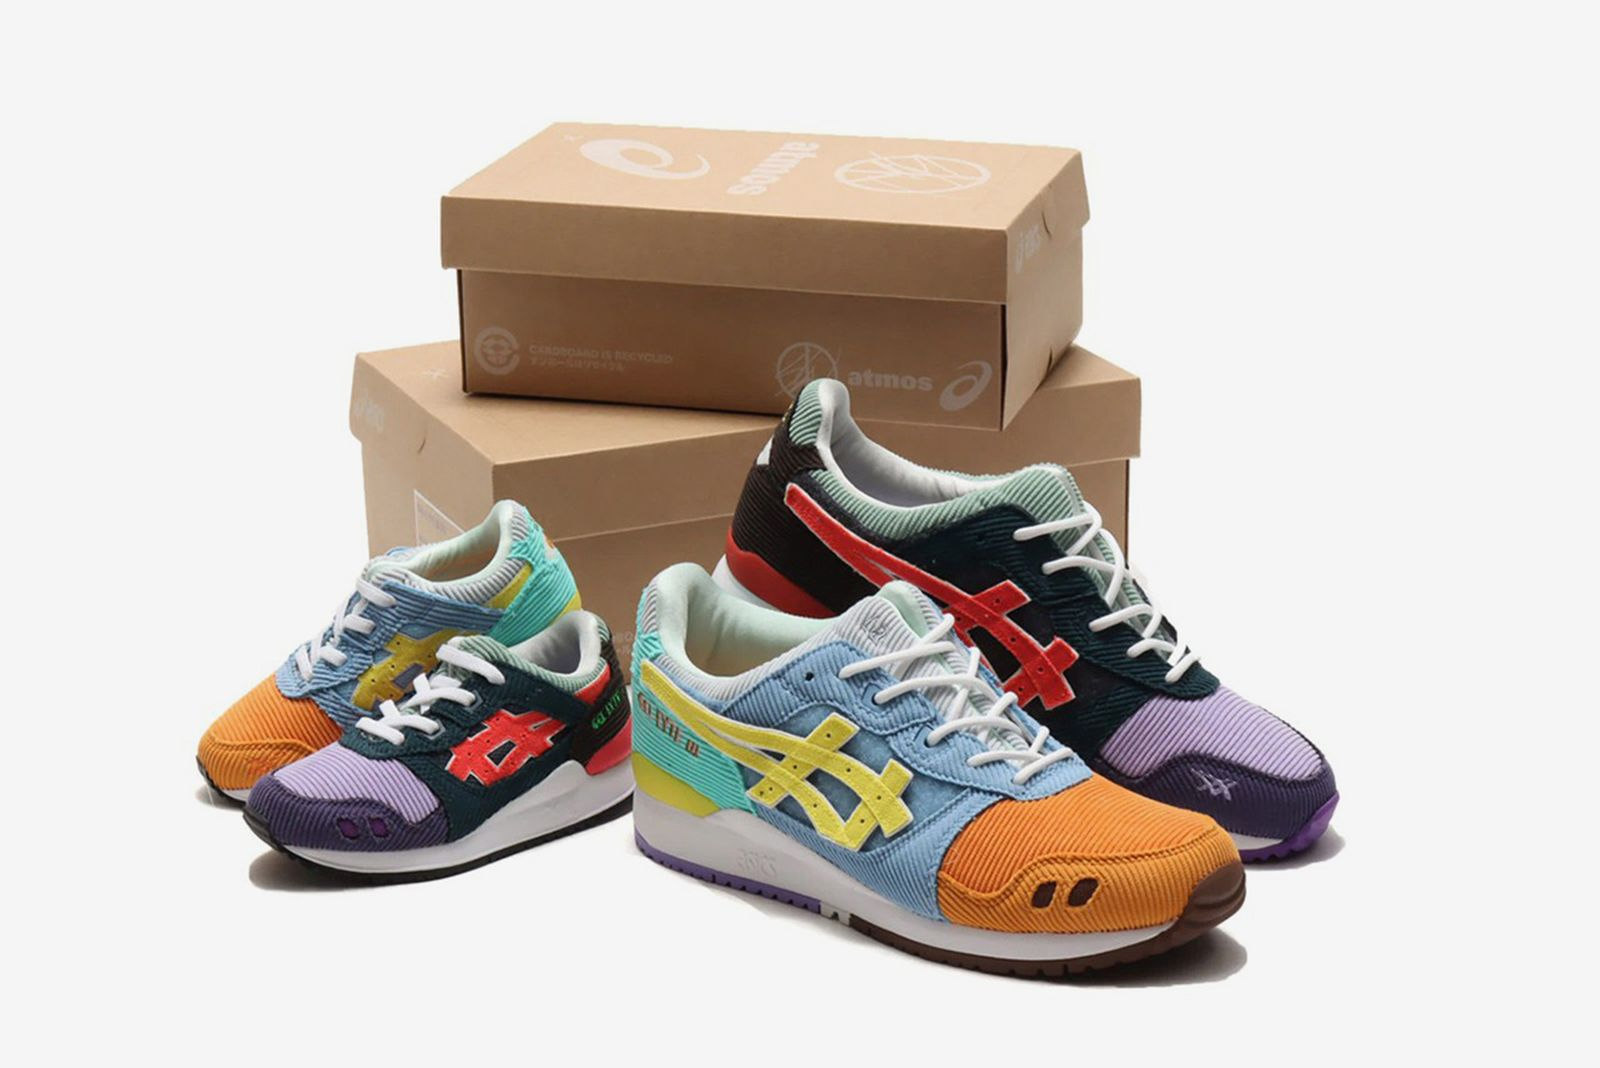 sean-wotherspoon-asics-gel-lyte-3-release-date-price-07